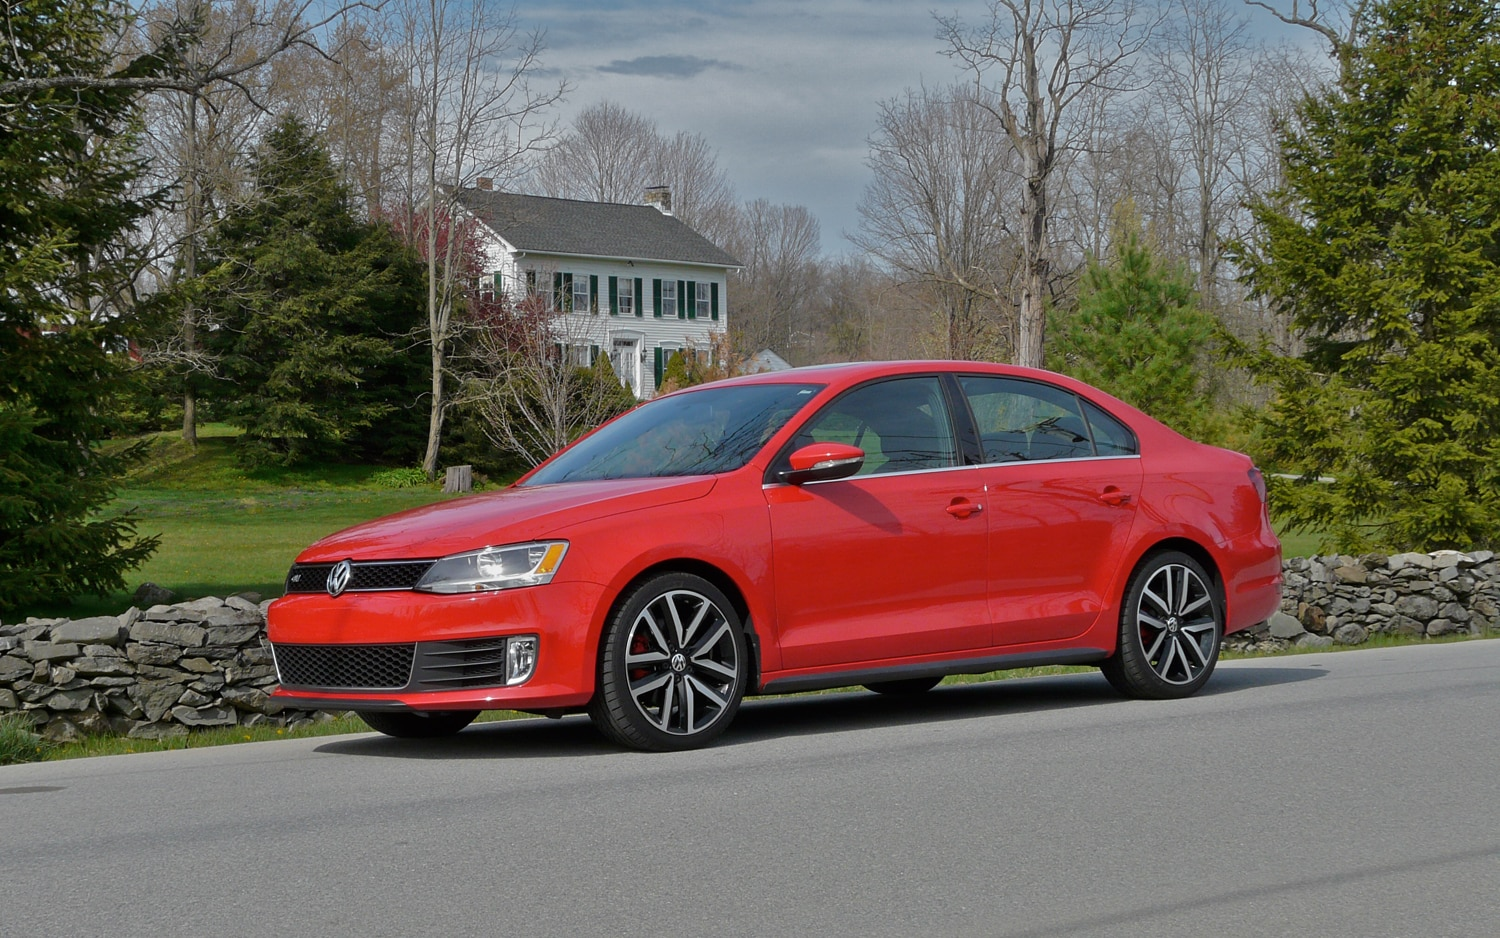 2012 Volkswagen Jetta GLI Front Left Side View1